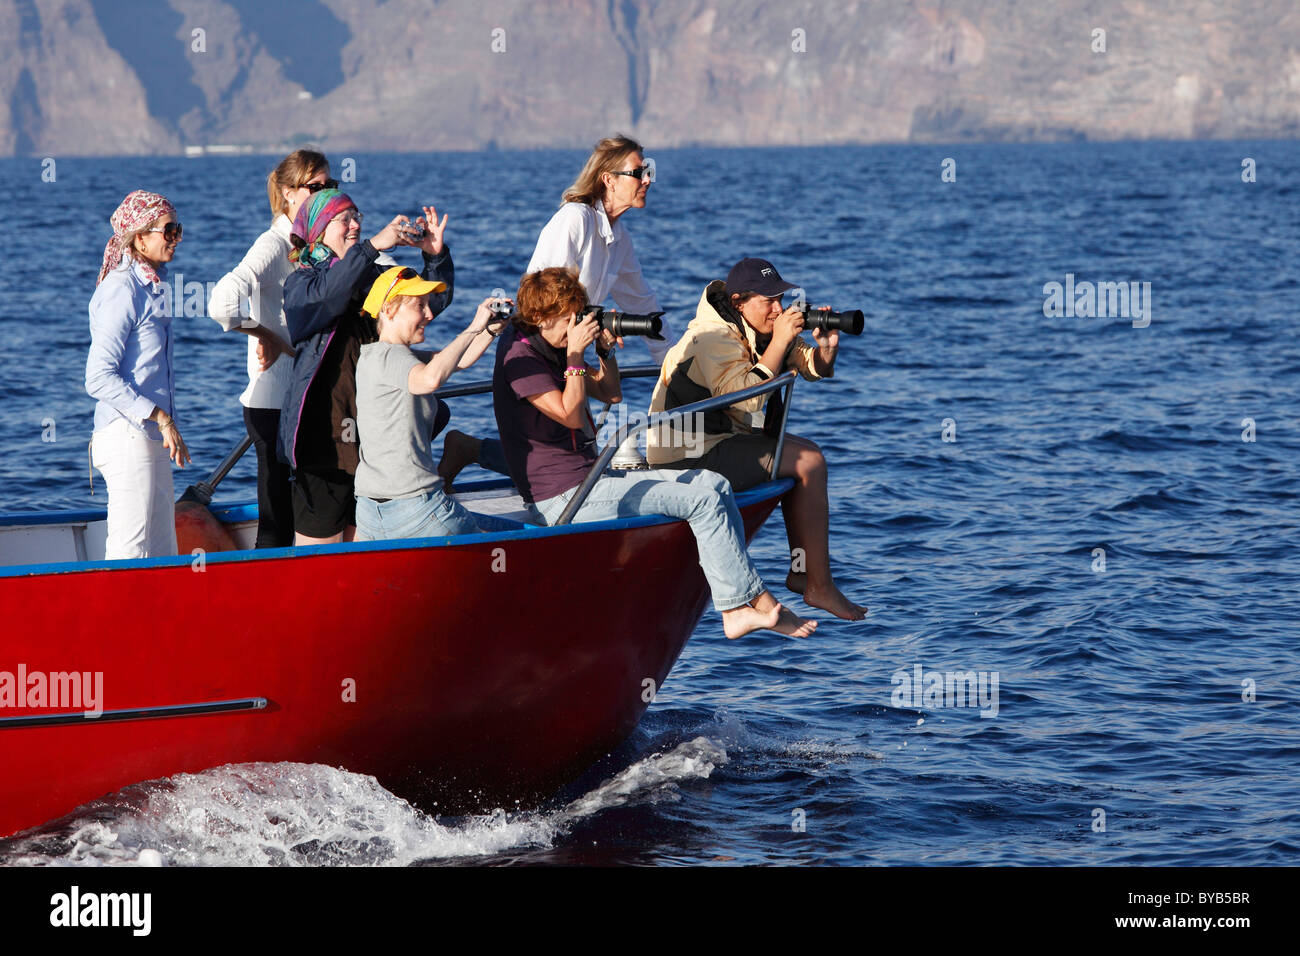 Photographing women in a boat, whale watching, La Gomera, Canary Islands, Spain, Europe - Stock Image